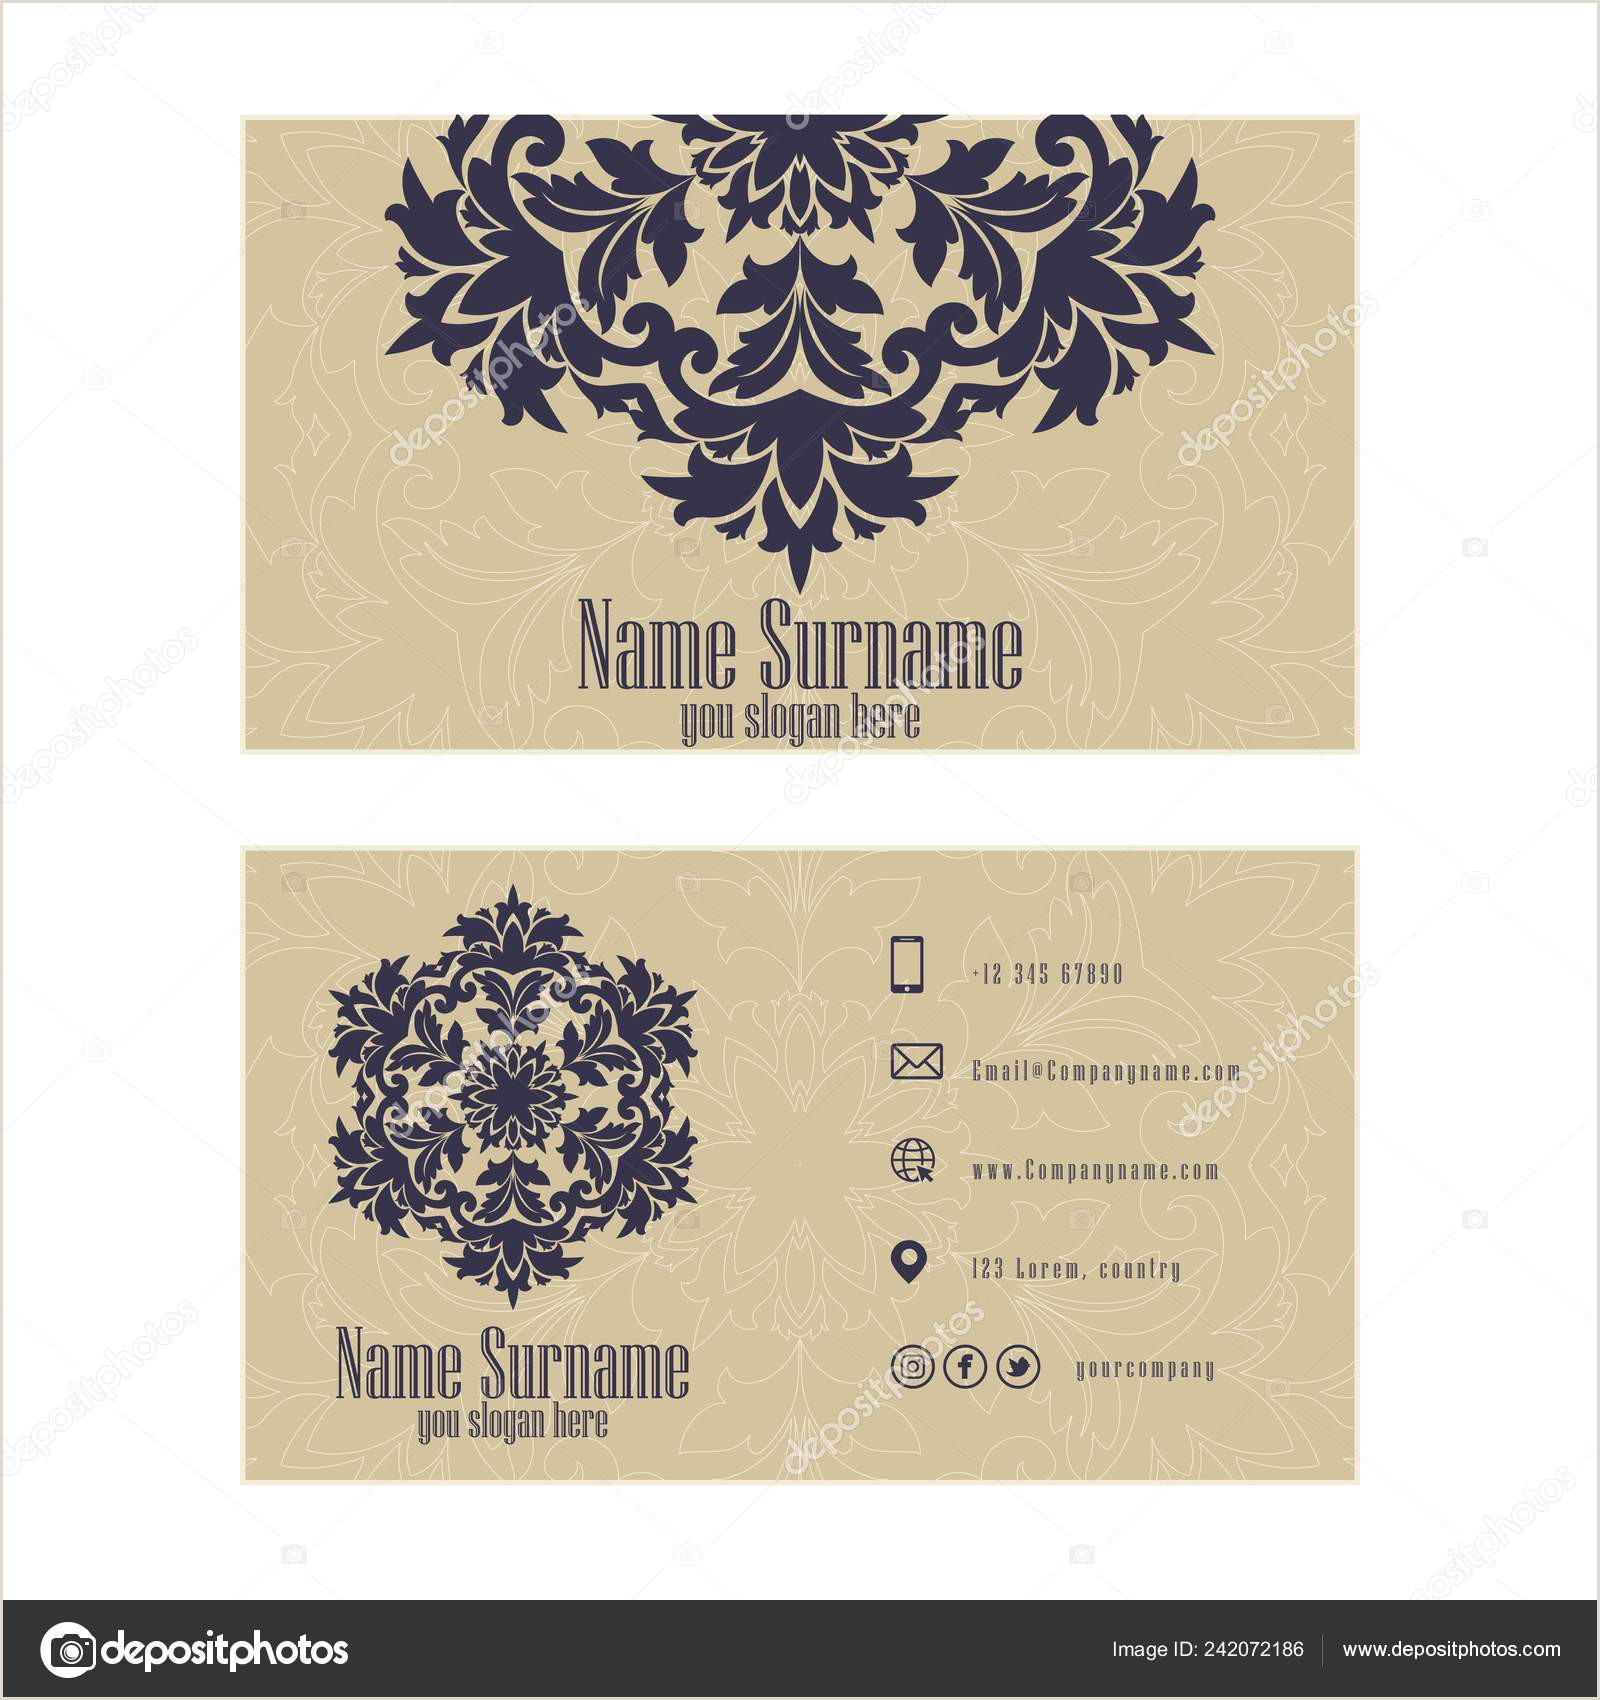 Unique Business Cards For Image Consultant Corporate Business Or Visiting Card Professional Designer Vector Abstract Creative Business Cards